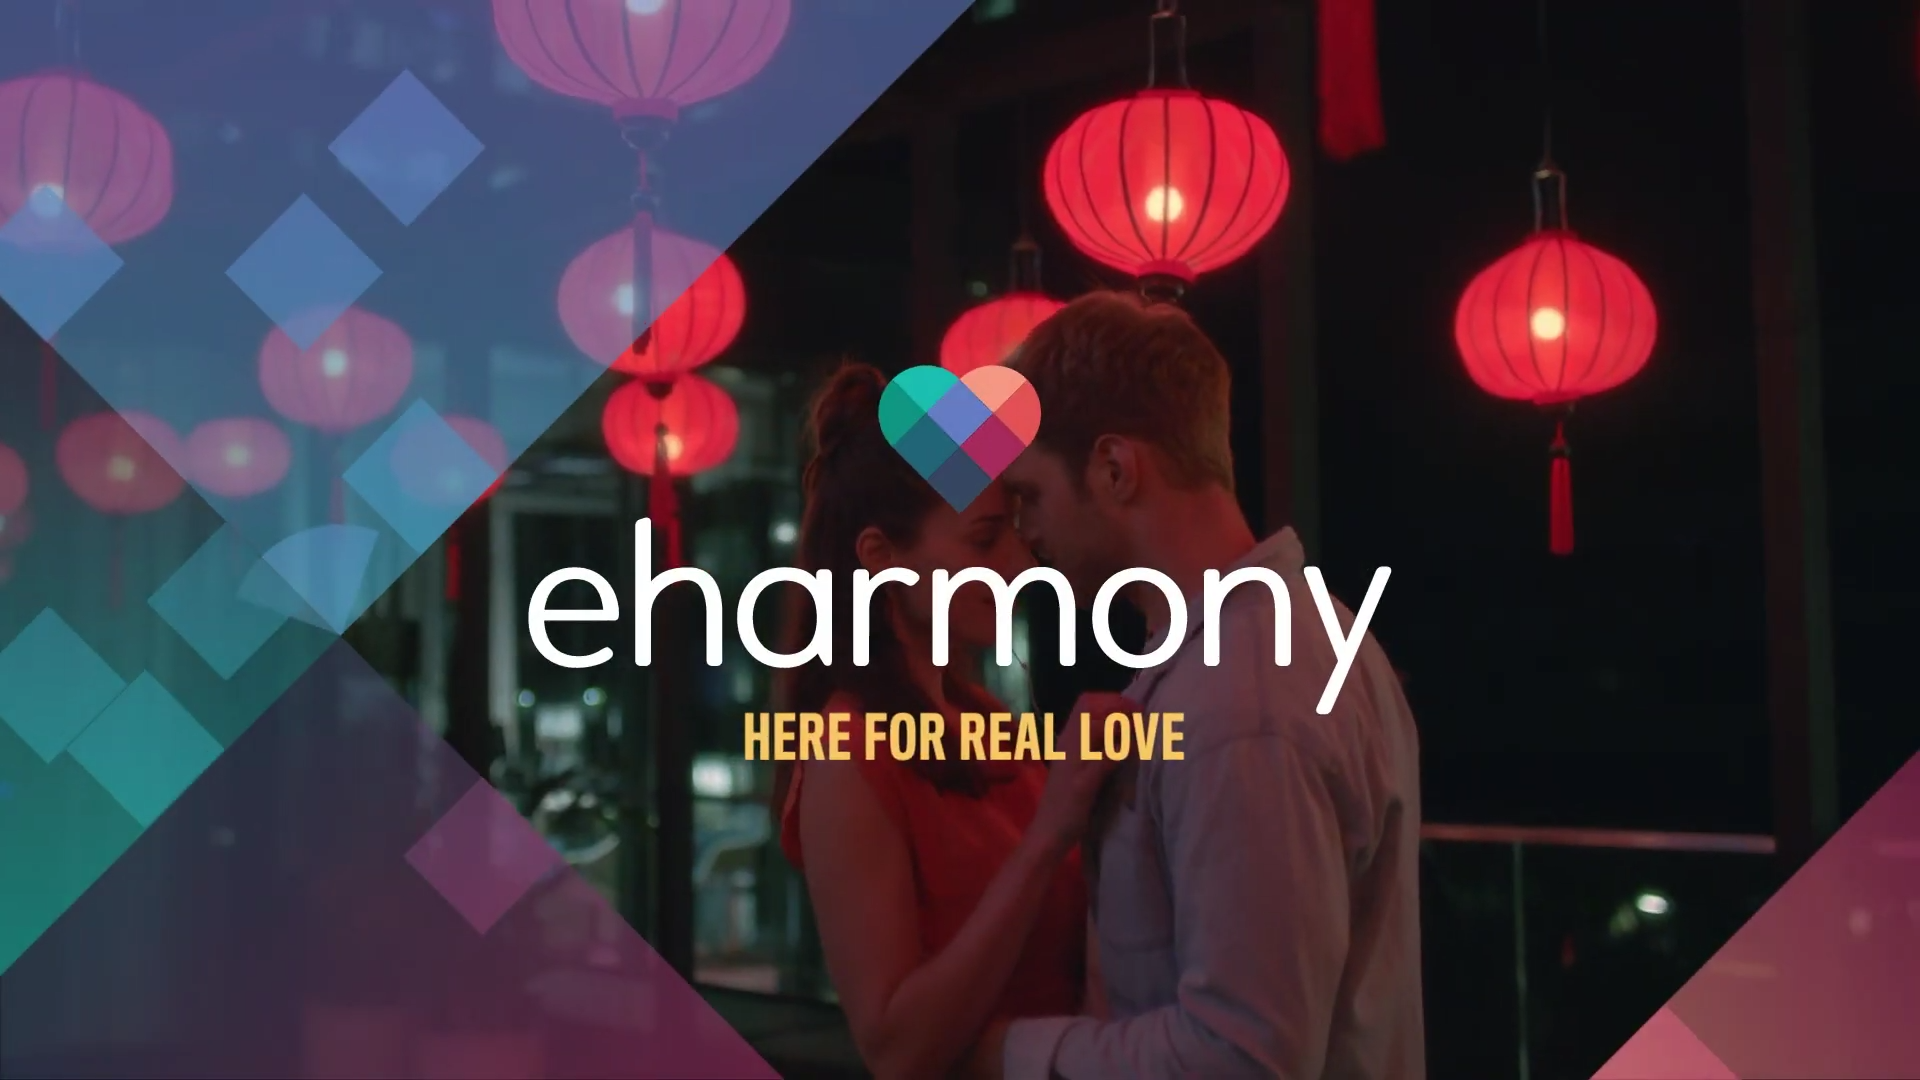 eharmony Unveils New 'Real Love' Television Marketing Campaign